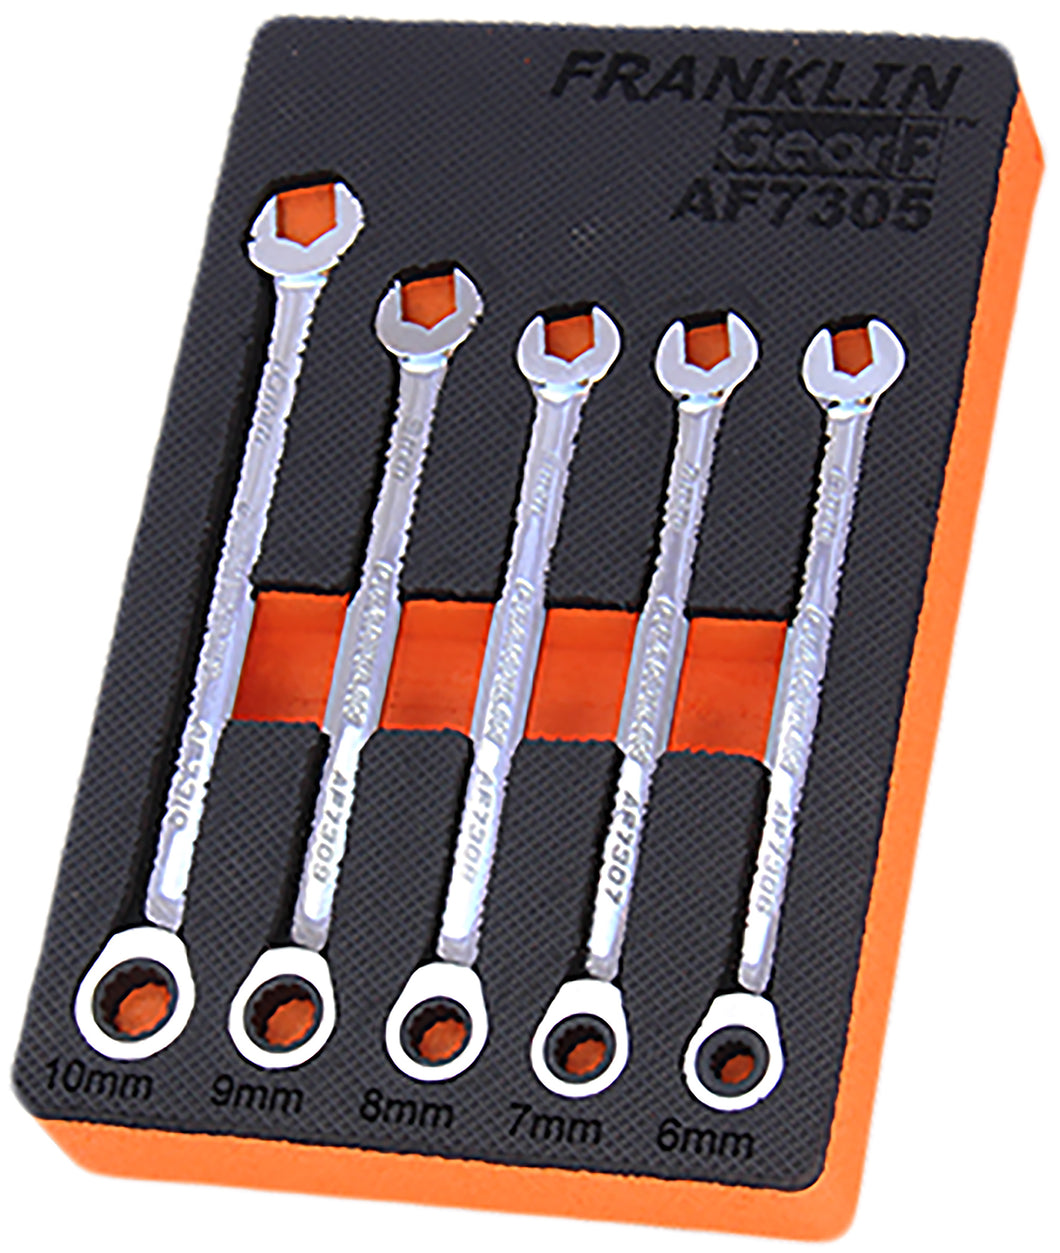 Gear F Grip 4+ 5 pce 12 pt Combination Ratchet Spanner Set